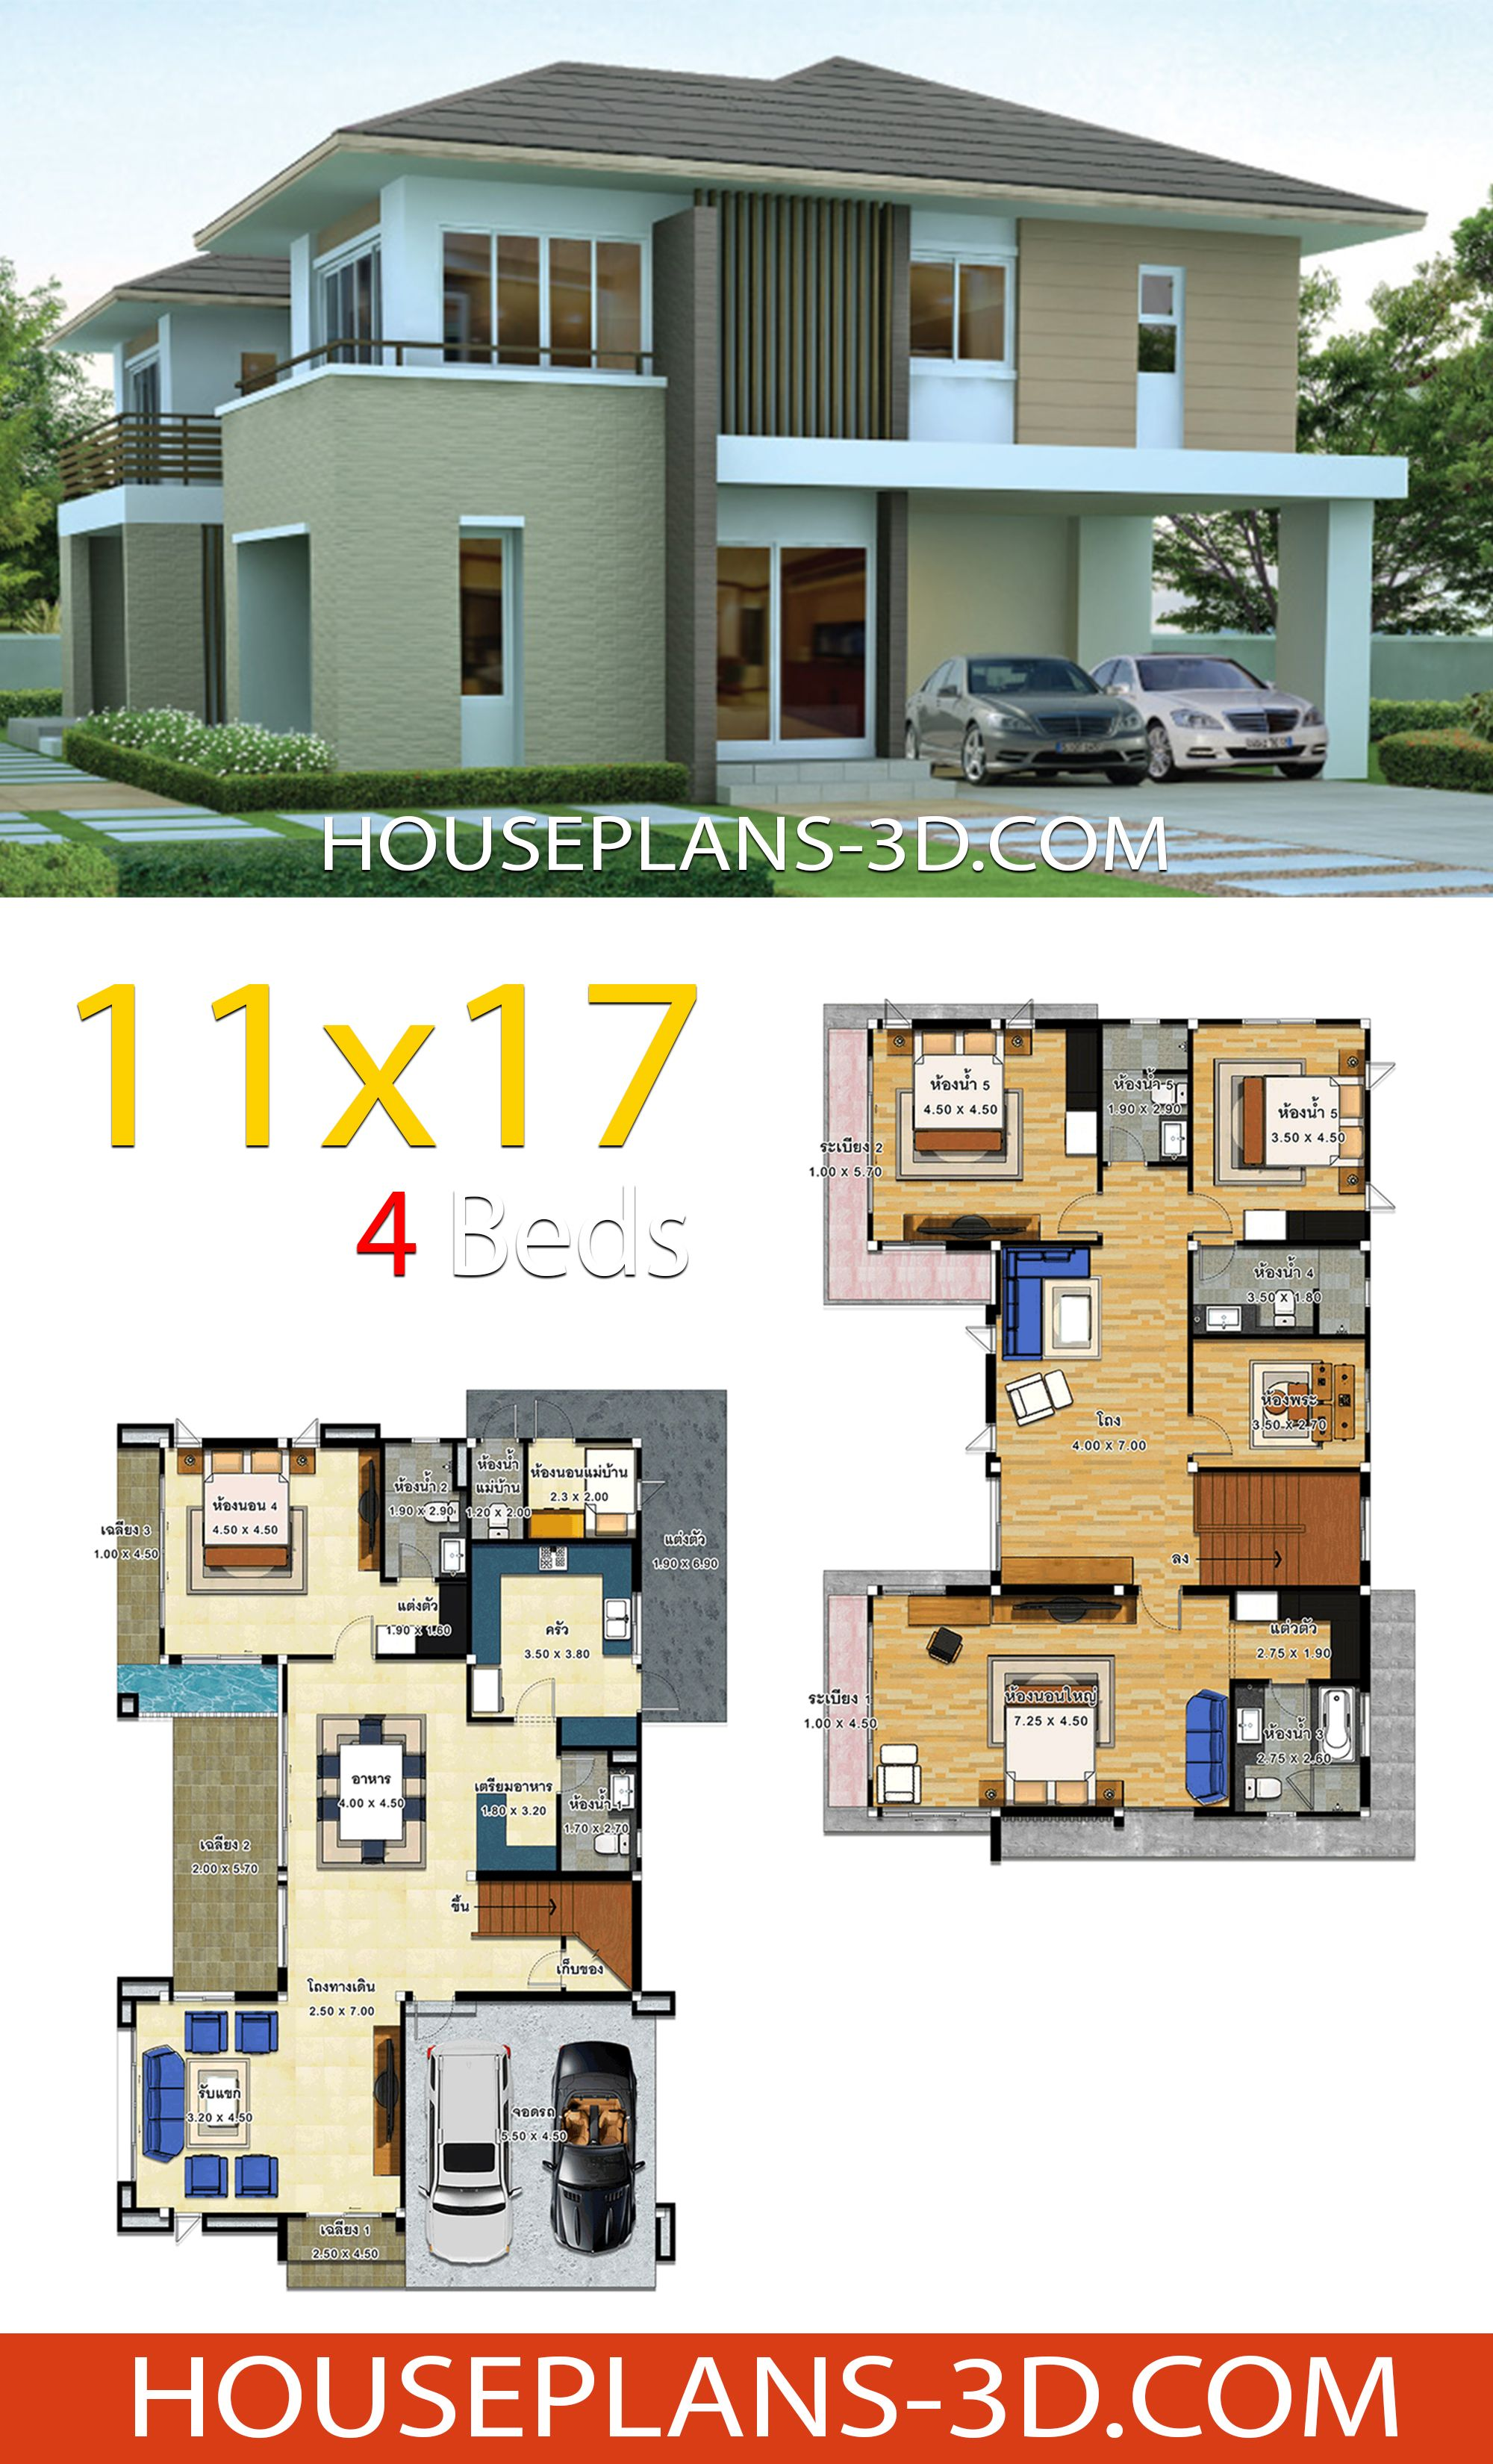 House Design 11x17 With 4 Bedrooms House Plans 3d House Plans House 4 Bedroom House Plans